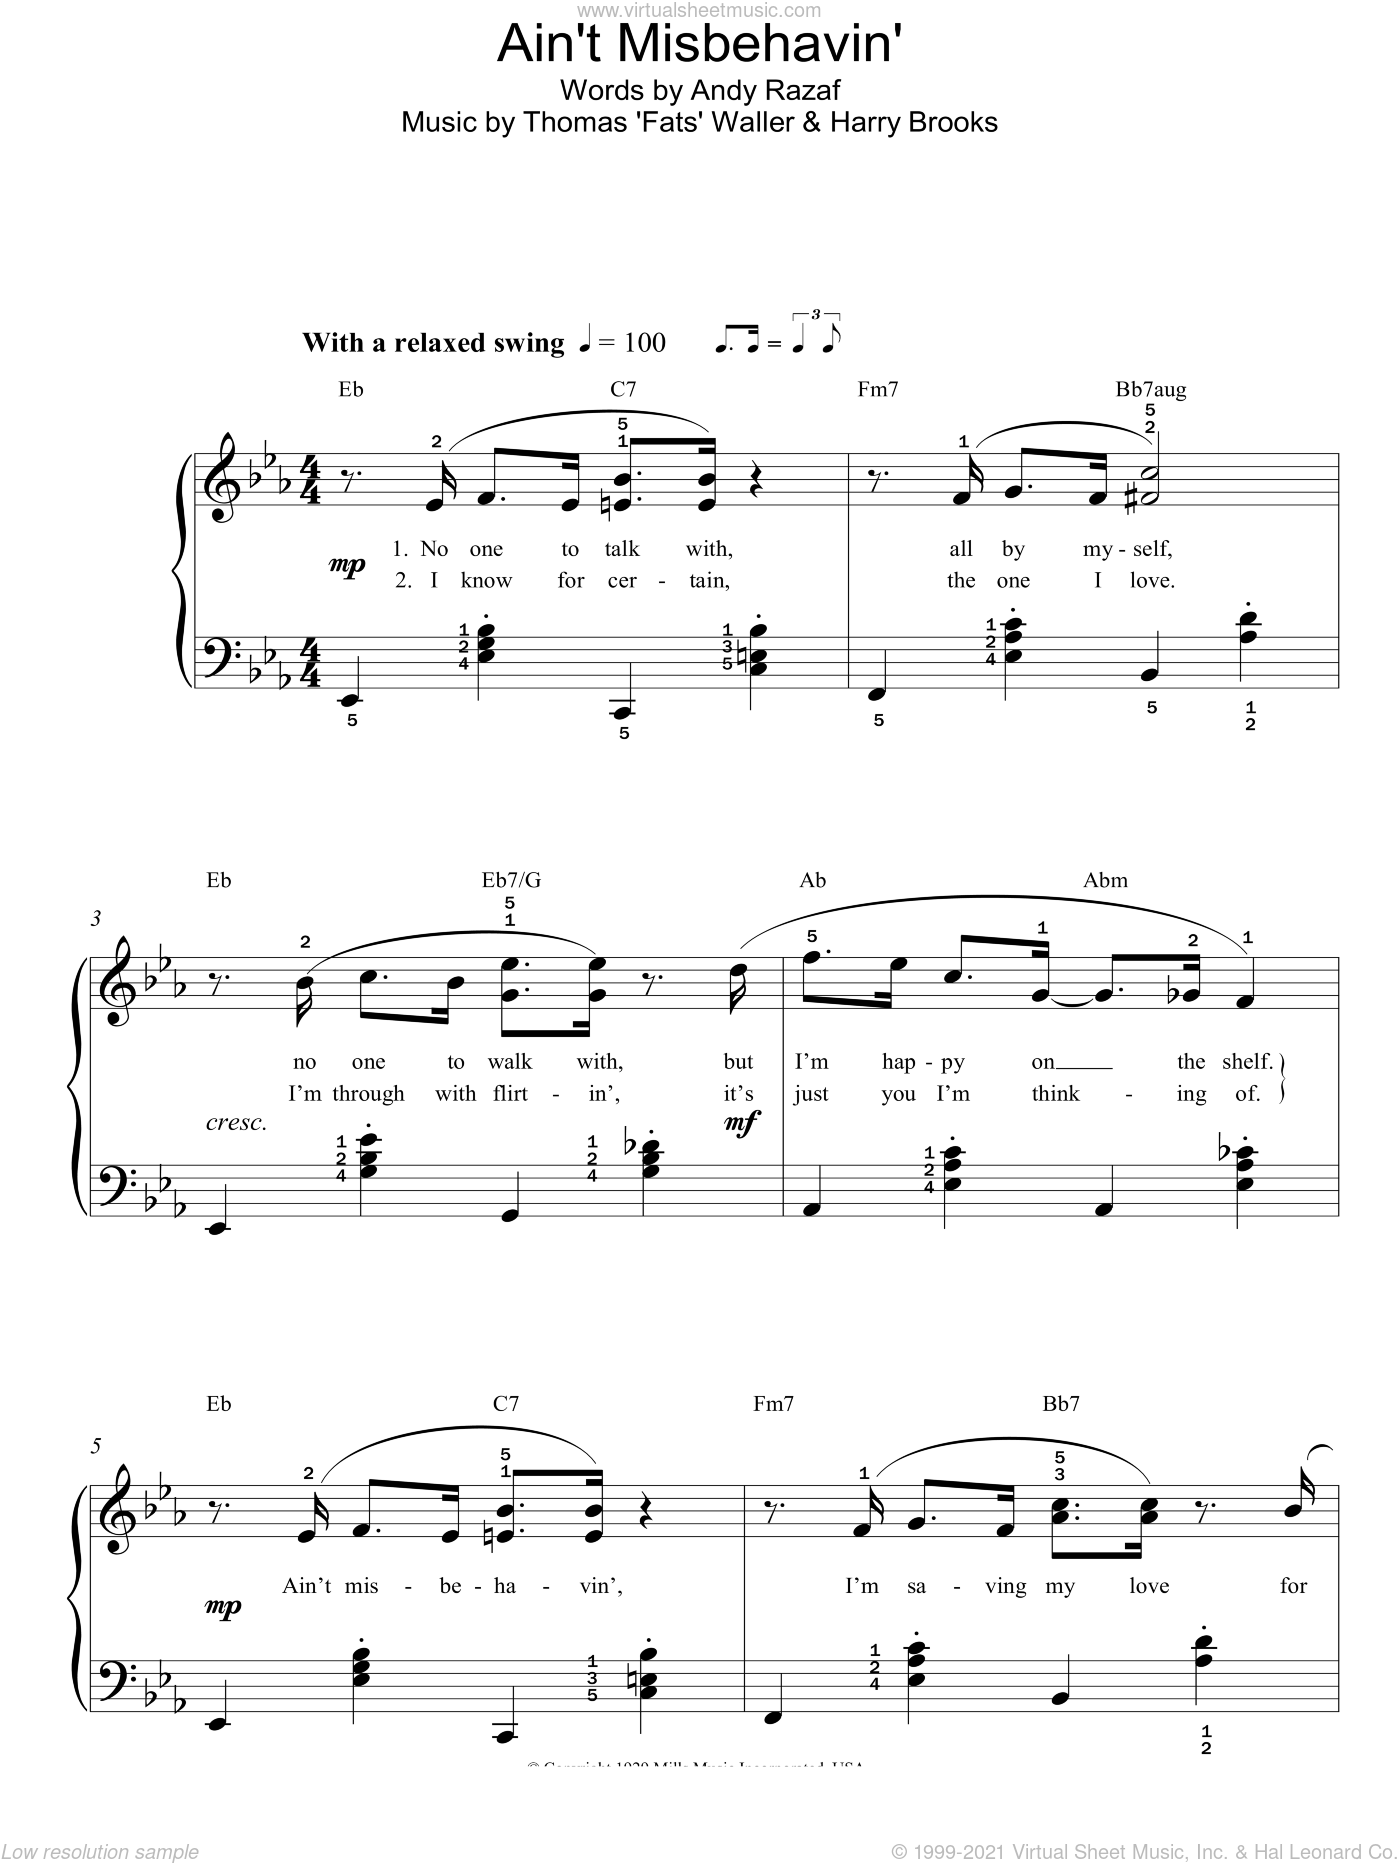 Ain't Misbehavin' sheet music for piano solo by Harry Brooks, Thomas Waller and Andy Razaf